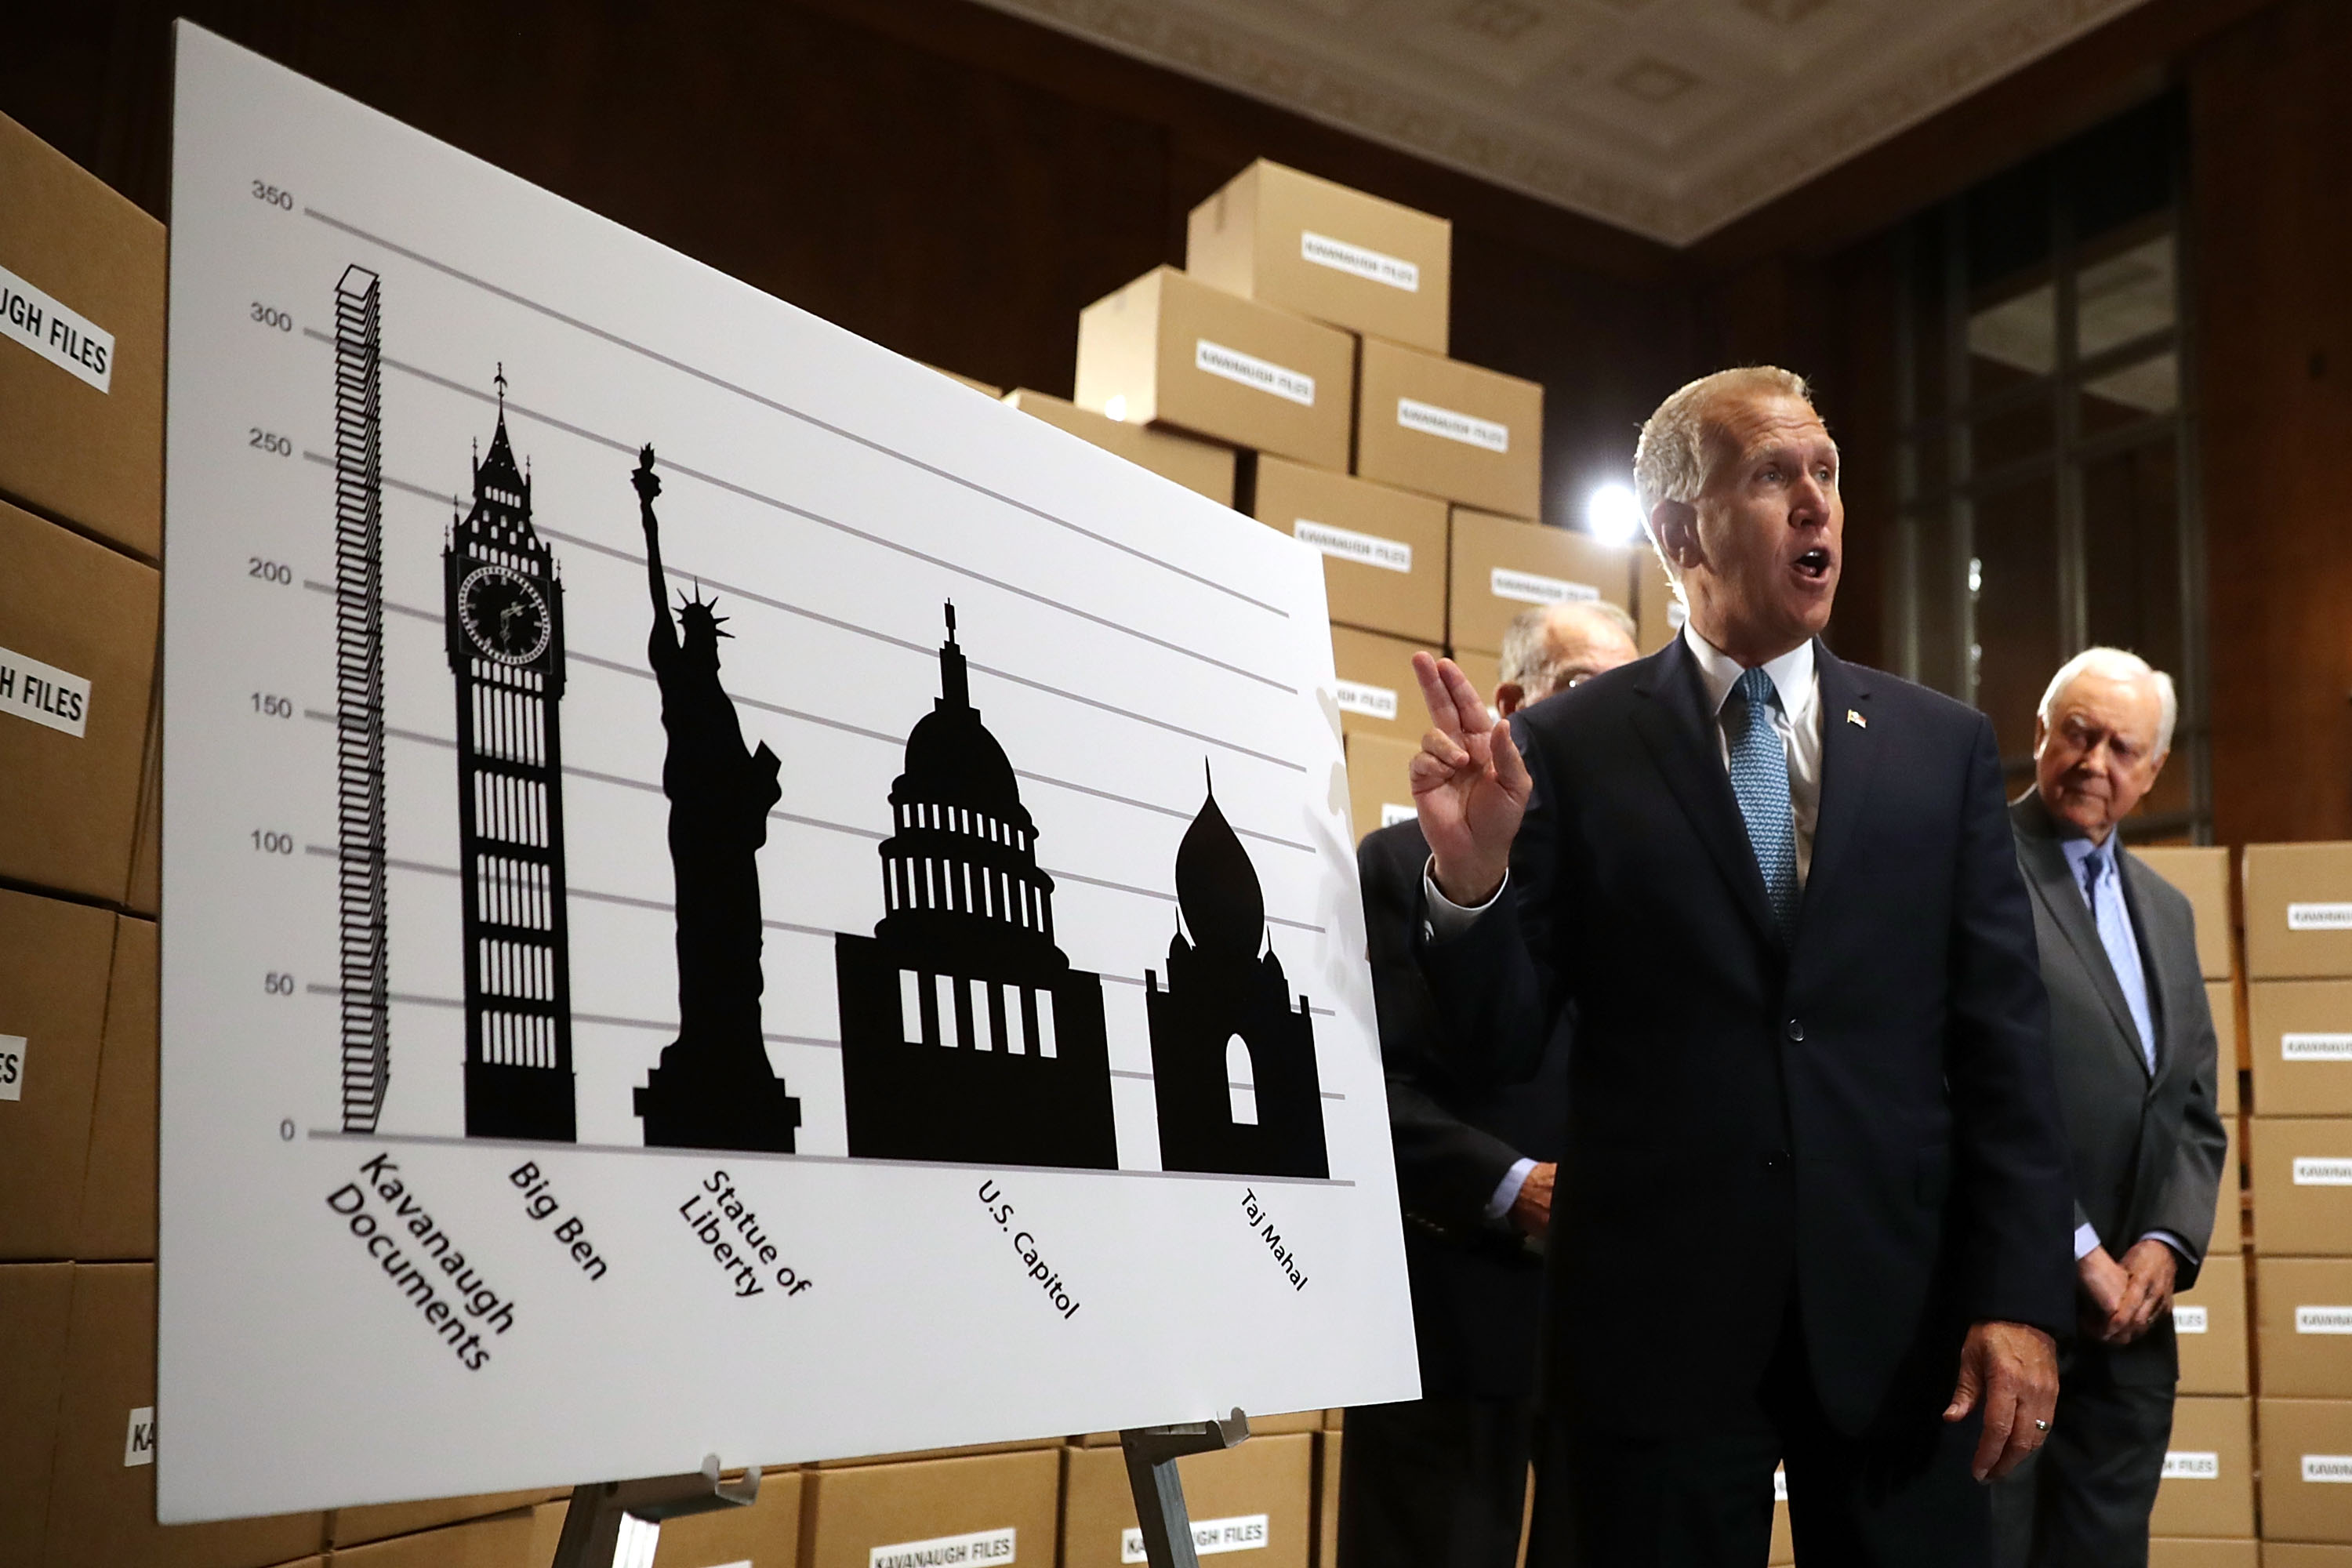 Republican lawmakers look on as Sen. Thom Tillis (R-NC) compares the volume of Brett Kavanaugh's document production to landmark buildings on August 2, 2018. (Chip Somodevilla/Getty Images)